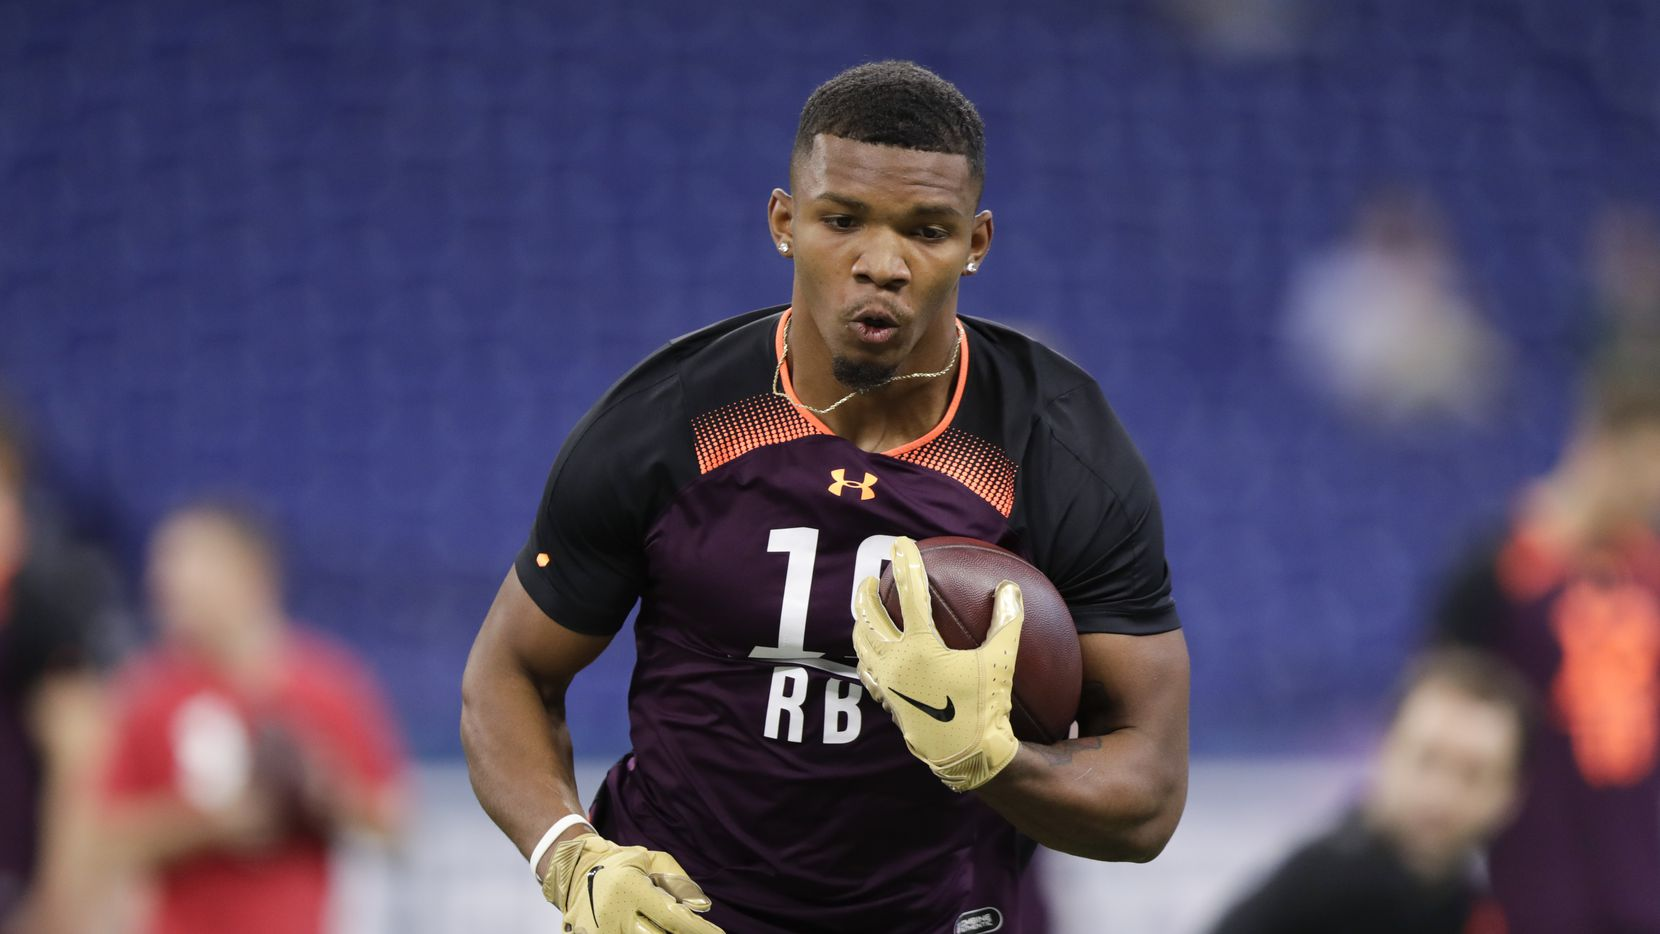 Memphis running back Tony Pollard runs a drill at the NFL football scouting combine in Indianapolis, Friday, March 1, 2019. (AP Photo/Michael Conroy)